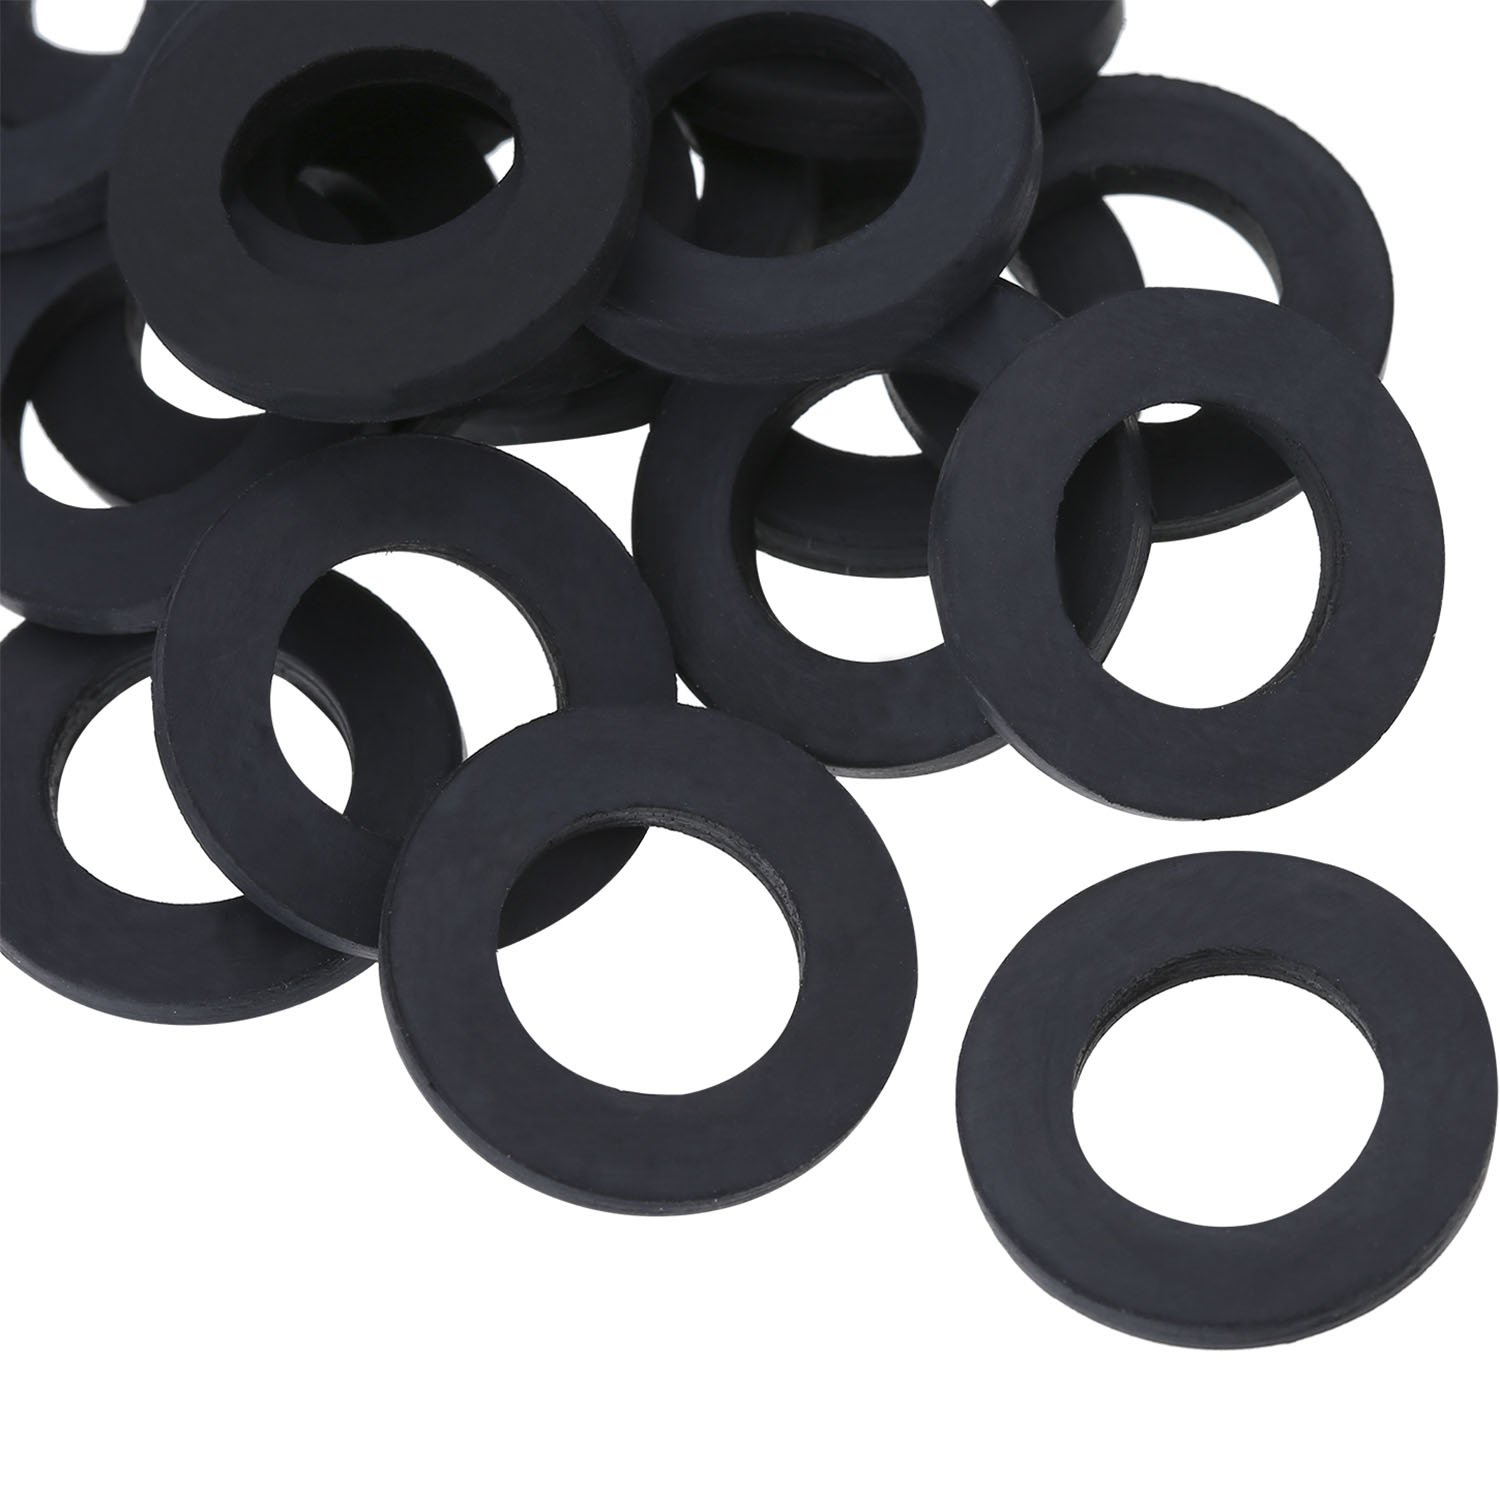 Hotop Shower Hose Washers Rubber Washers Seals for 1/2 Inch Shower Head and Hose, 20 Pack